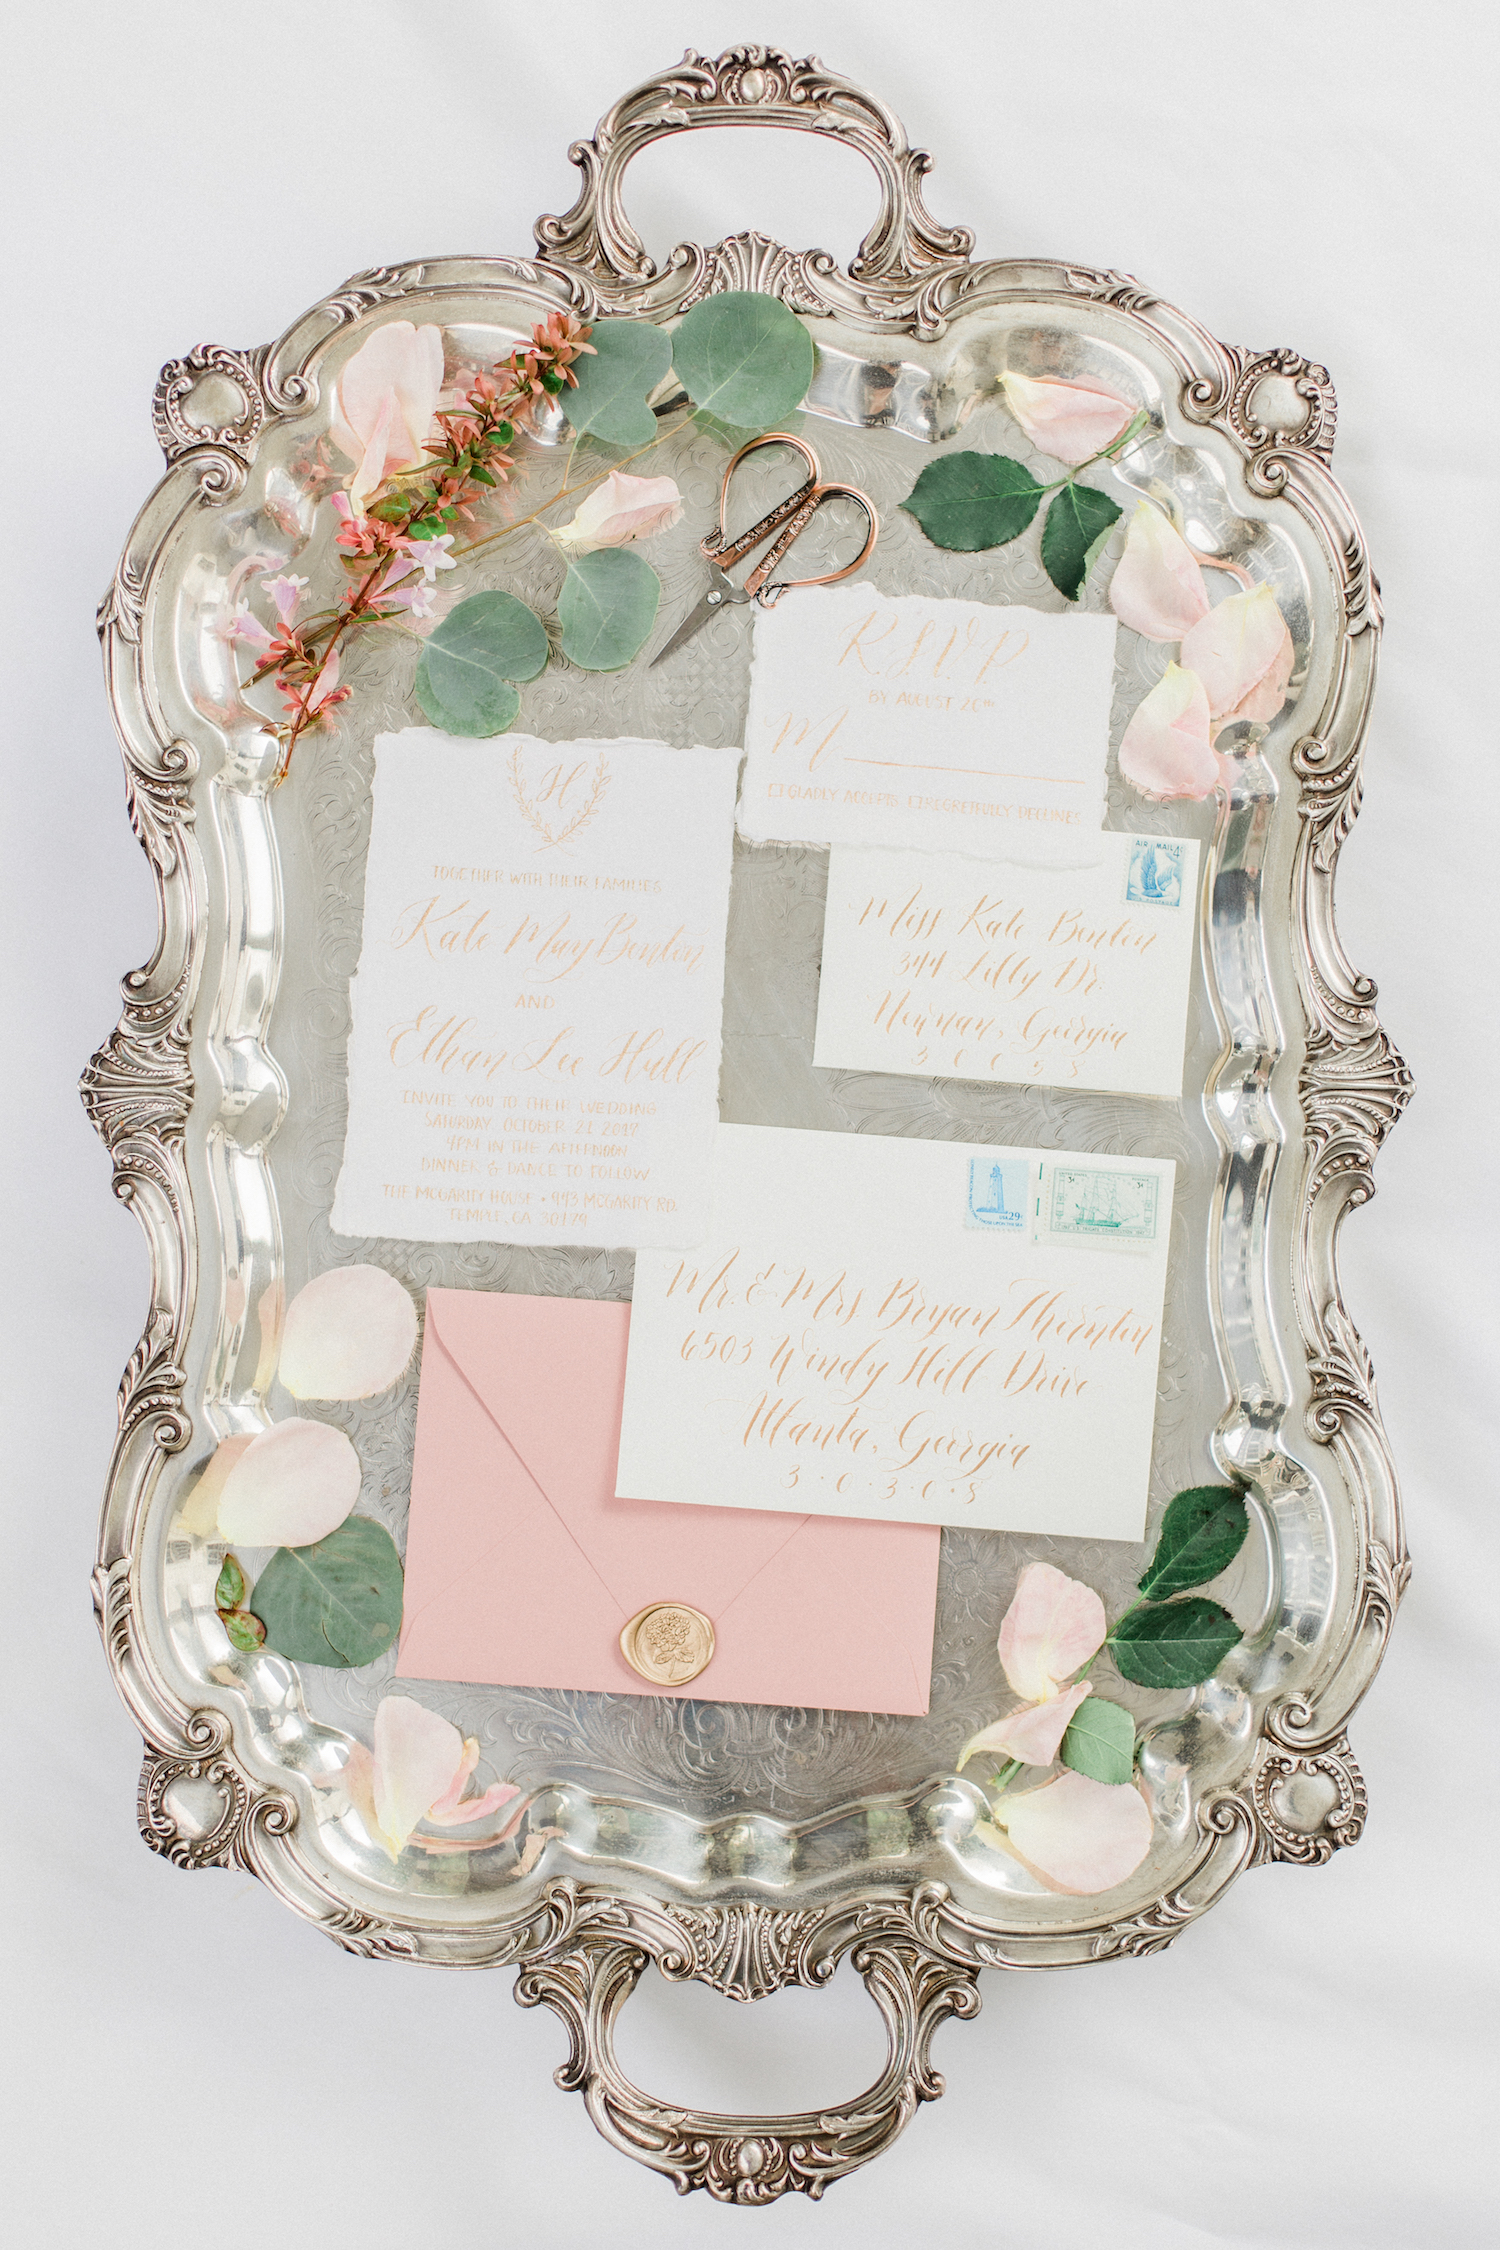 Styling invitations suite as a flat lay on an antique silver tray.